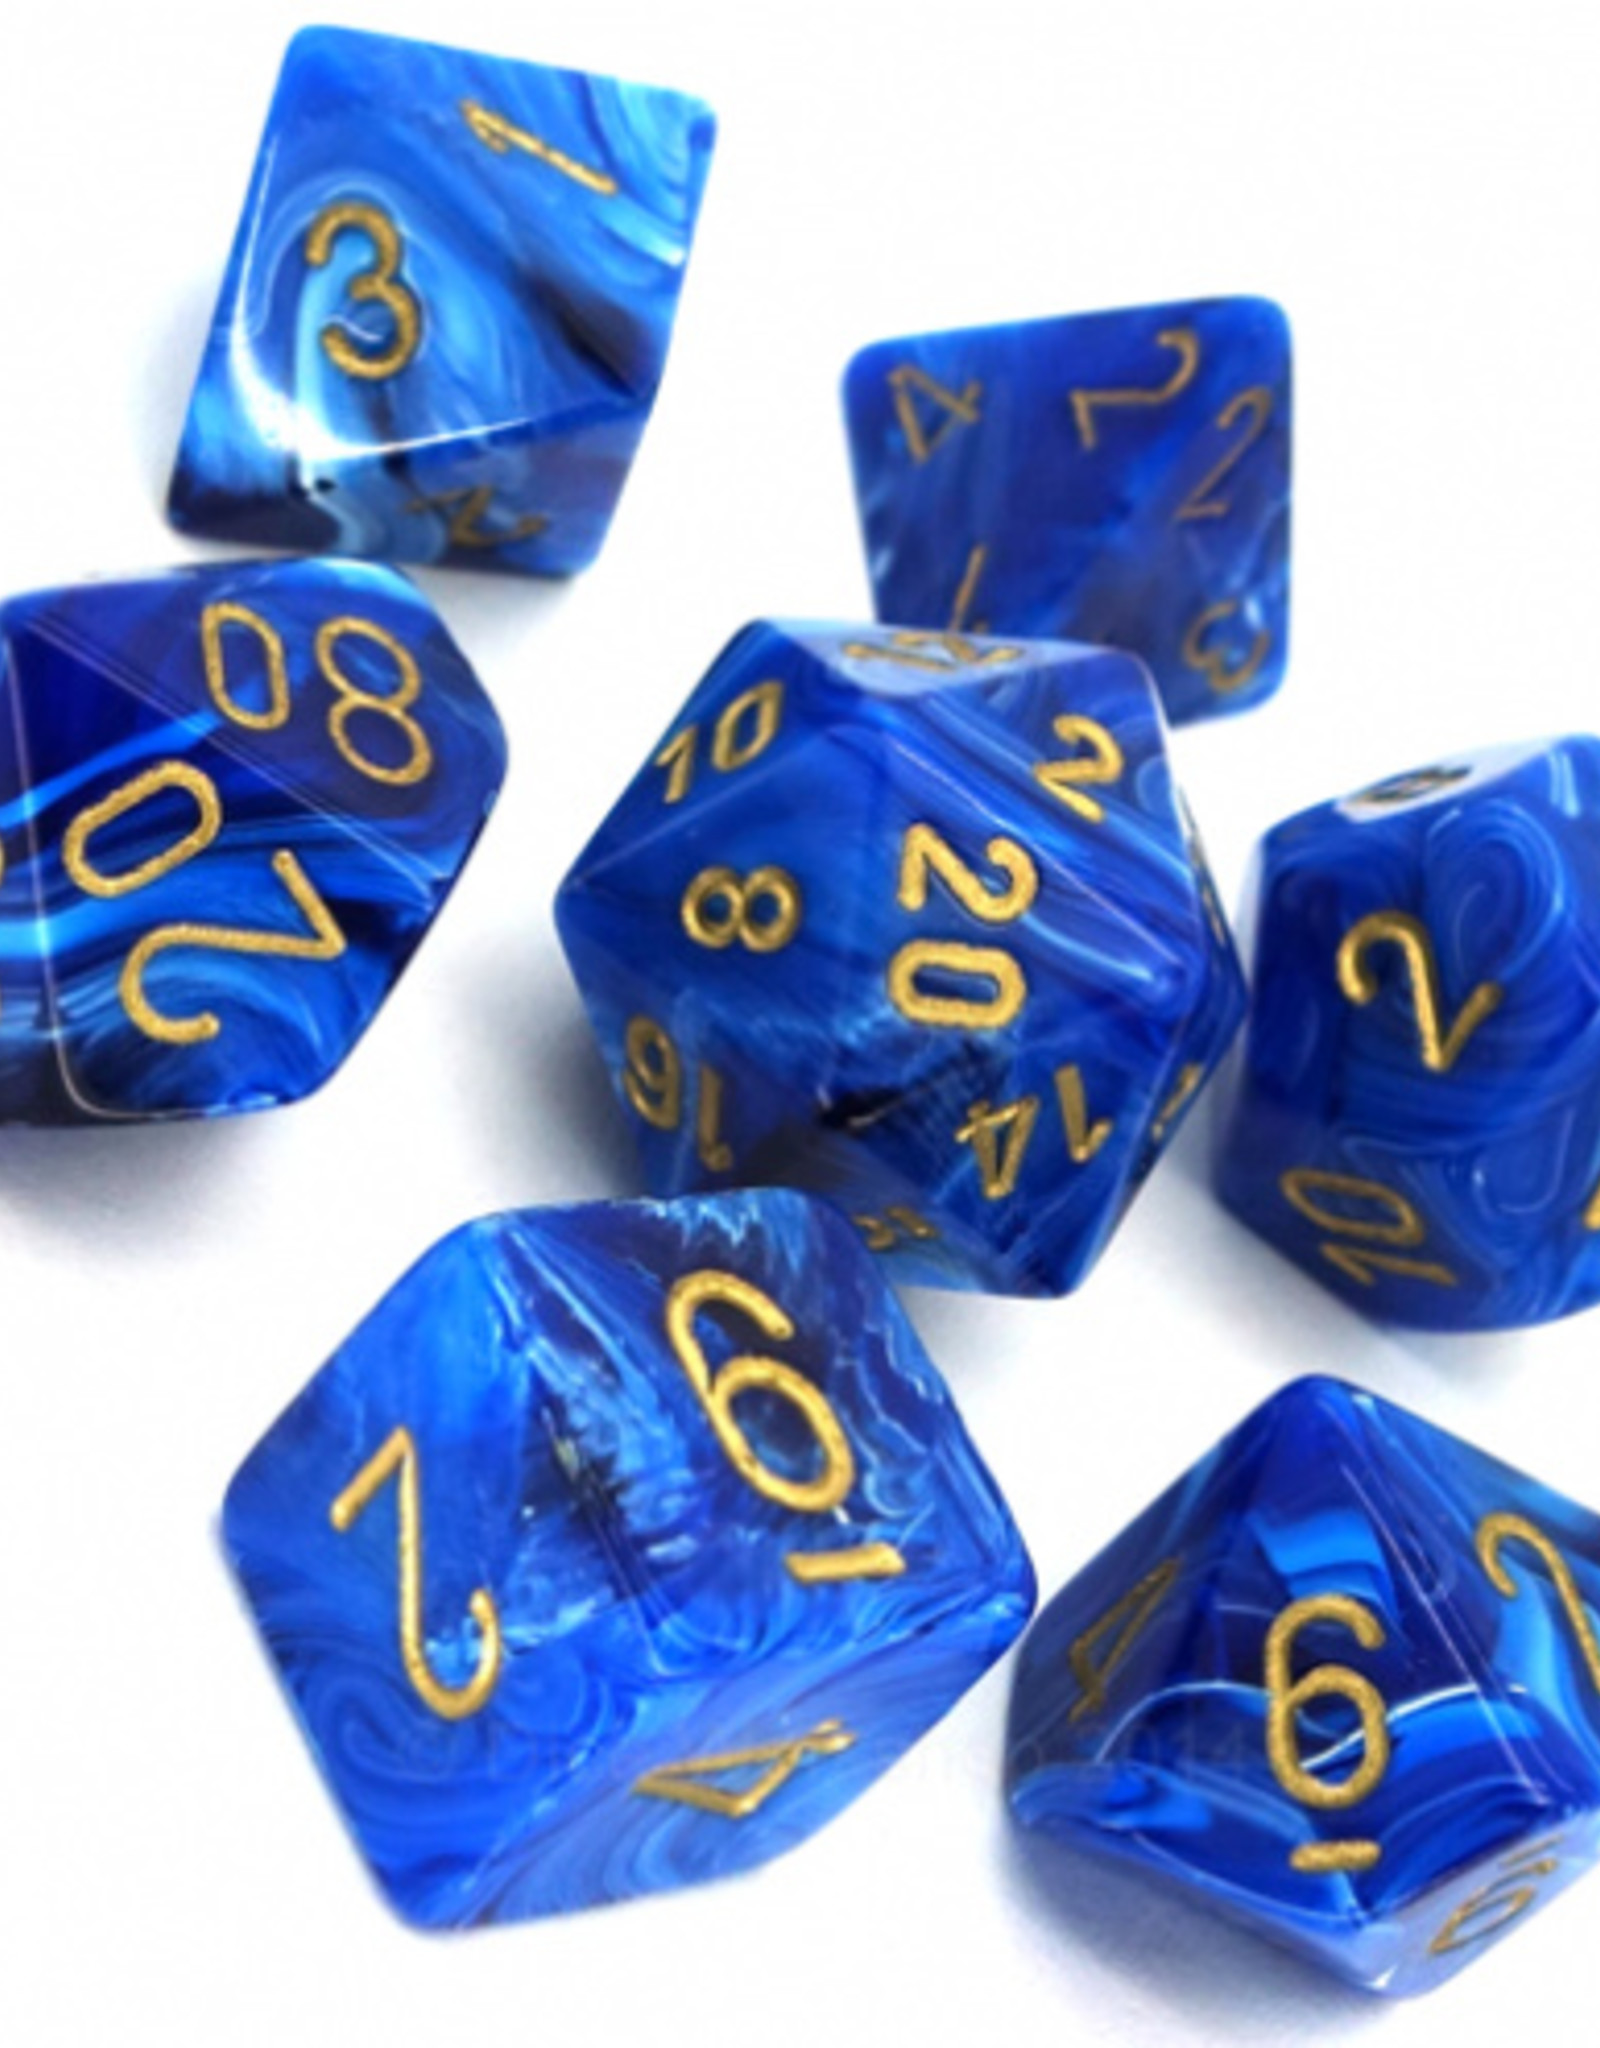 Chessex Chessex 7-Die set Vortex - Blue/Gold